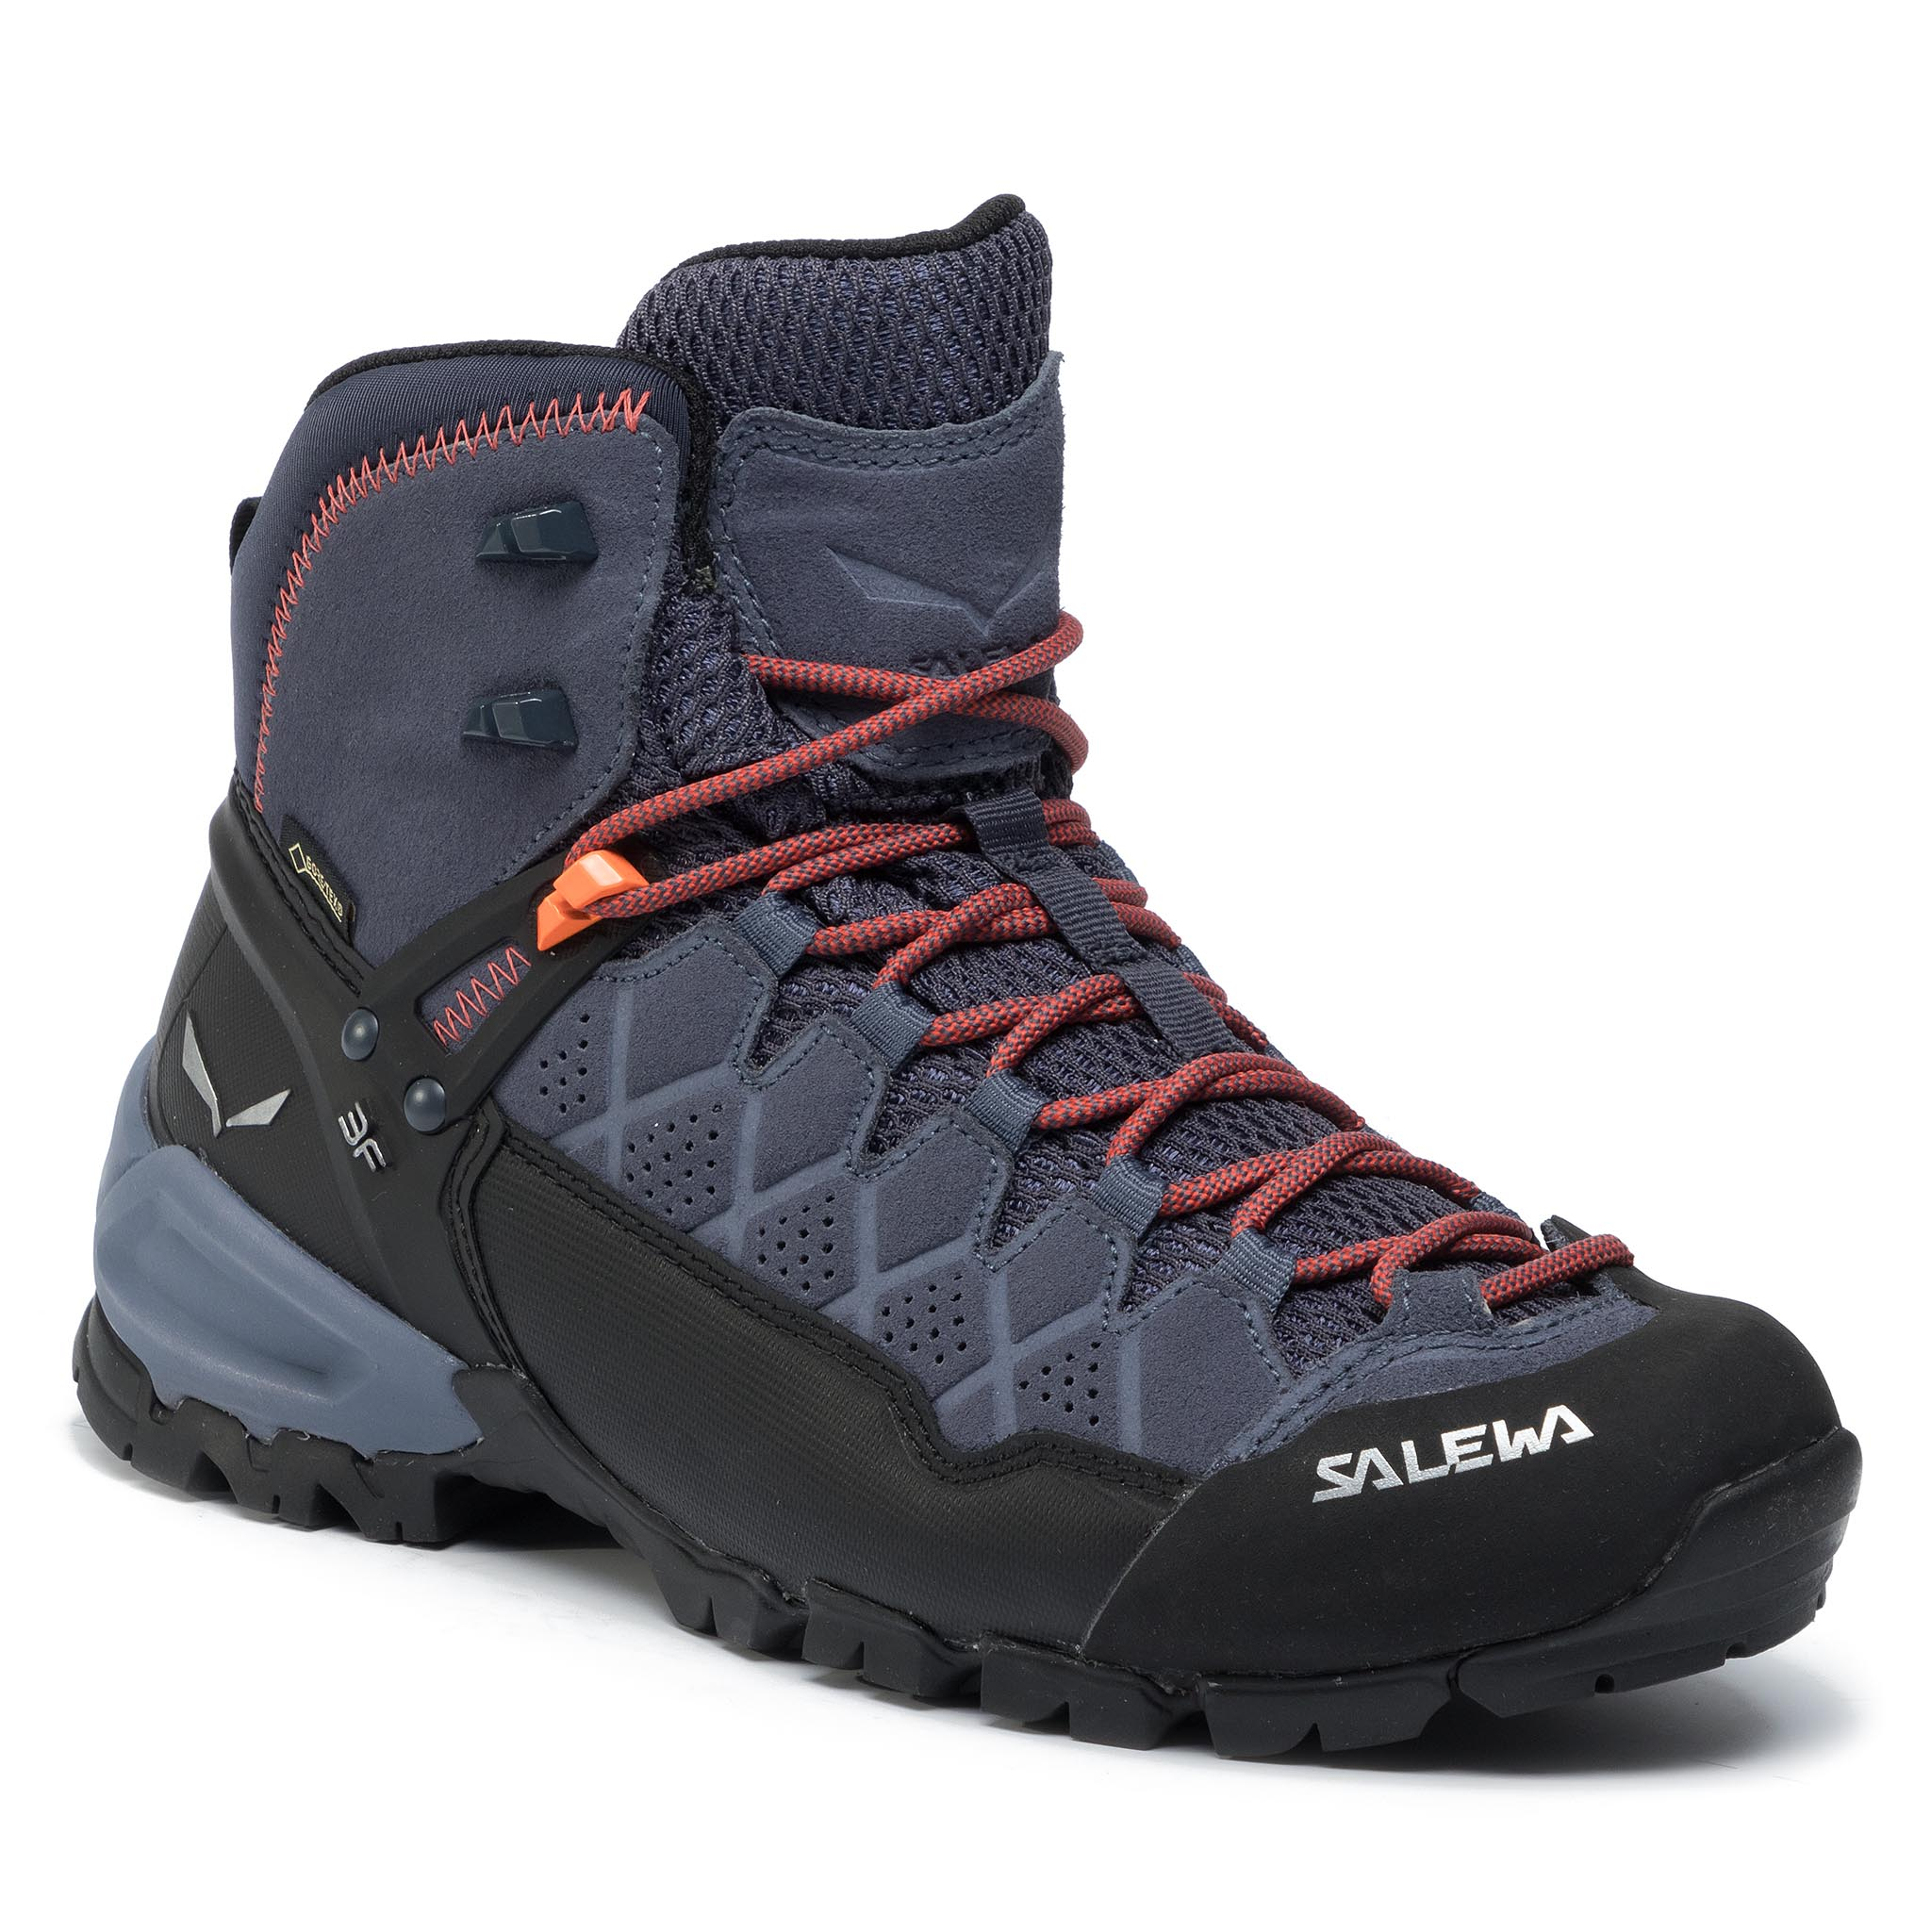 Trekkings Salewa - Alp Trainer Mid Gtx Gore-Tex 63432-3845 Ombre Blue/Fluo Orange imagine epantofi.ro 2021